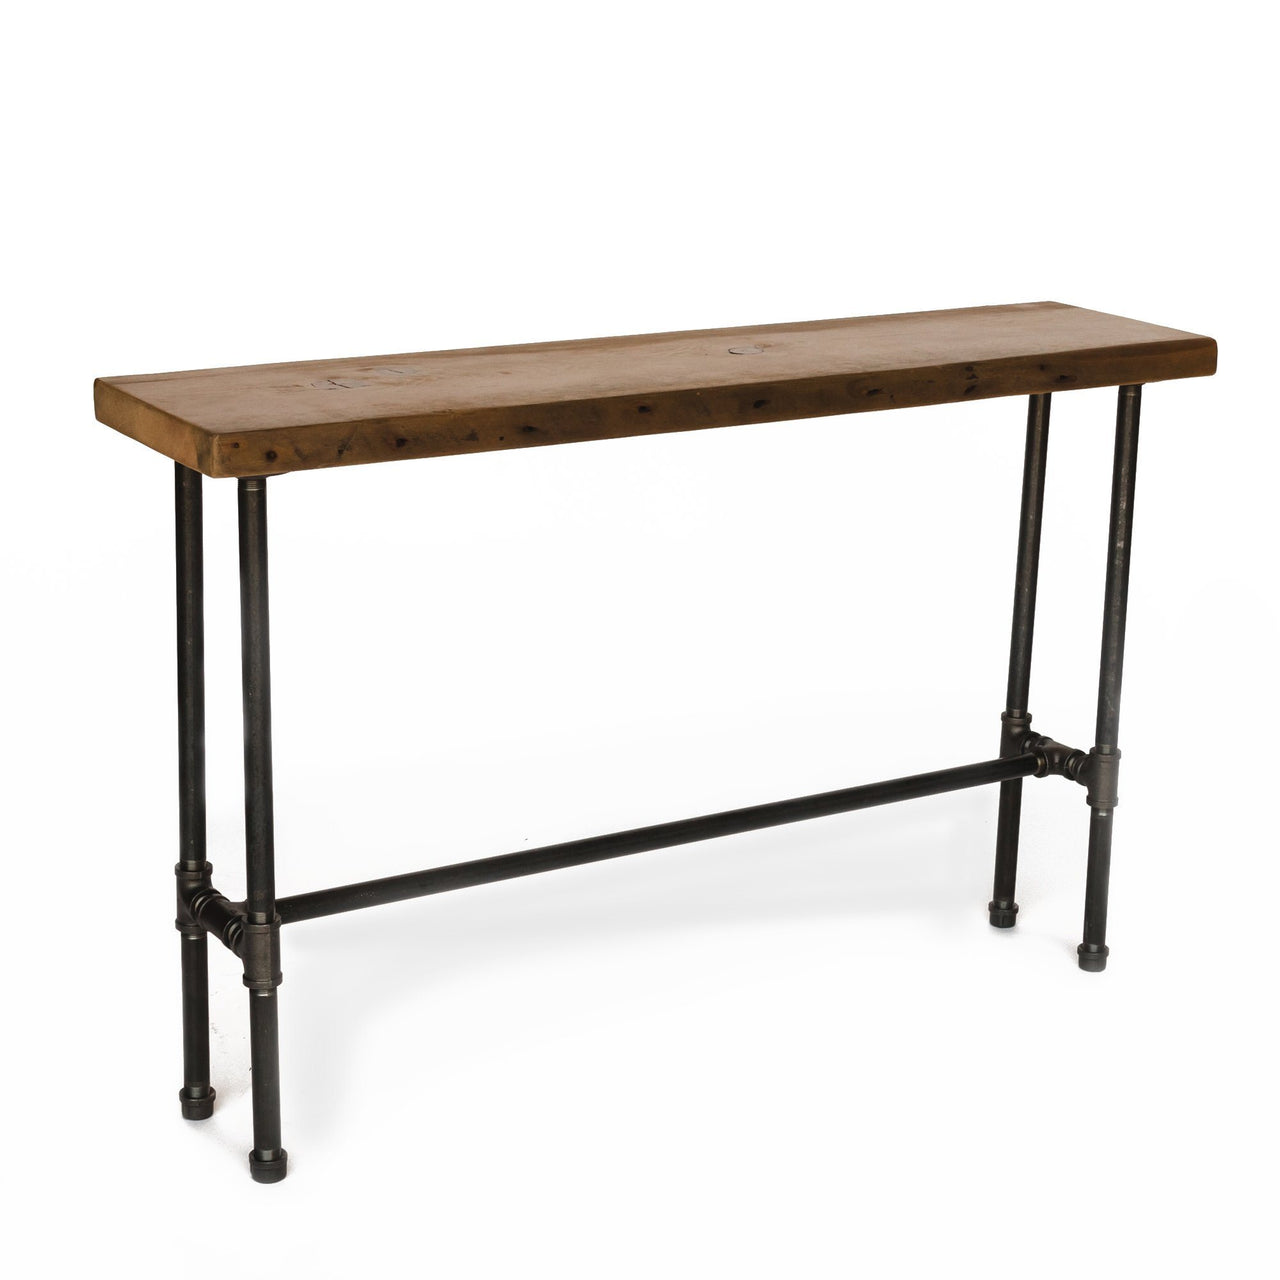 Modern Industry Console Table with Crossbar